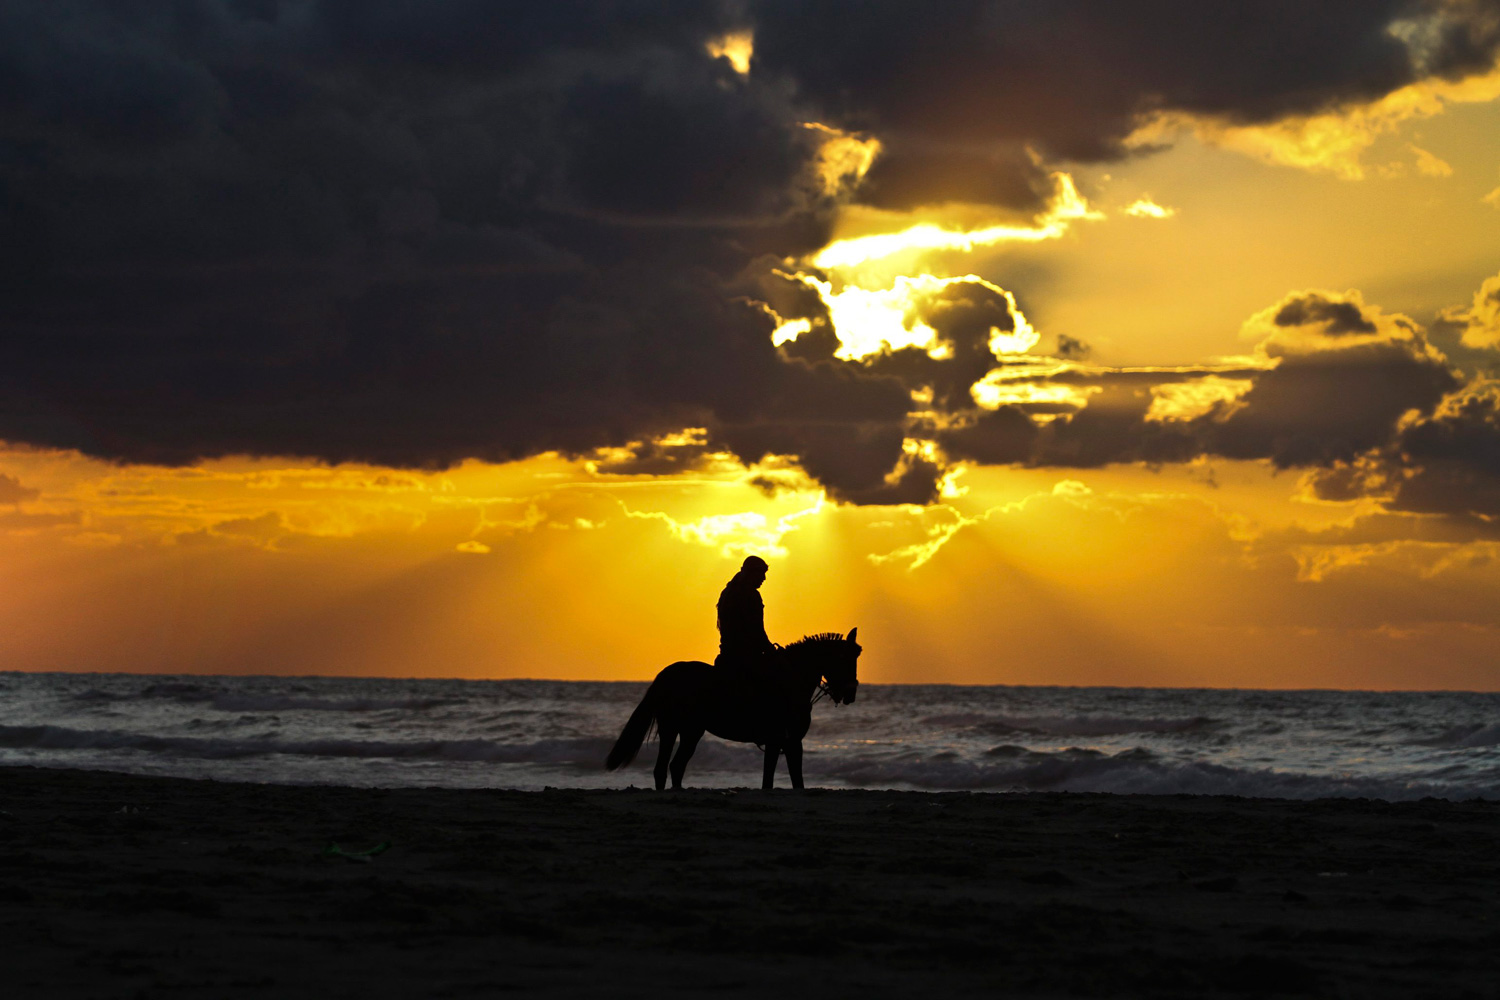 January 20, 2012. A Palestinian man is silhouetted against the setting sun as he rides a horses on a beach near Gaza City on a cold winter evening.